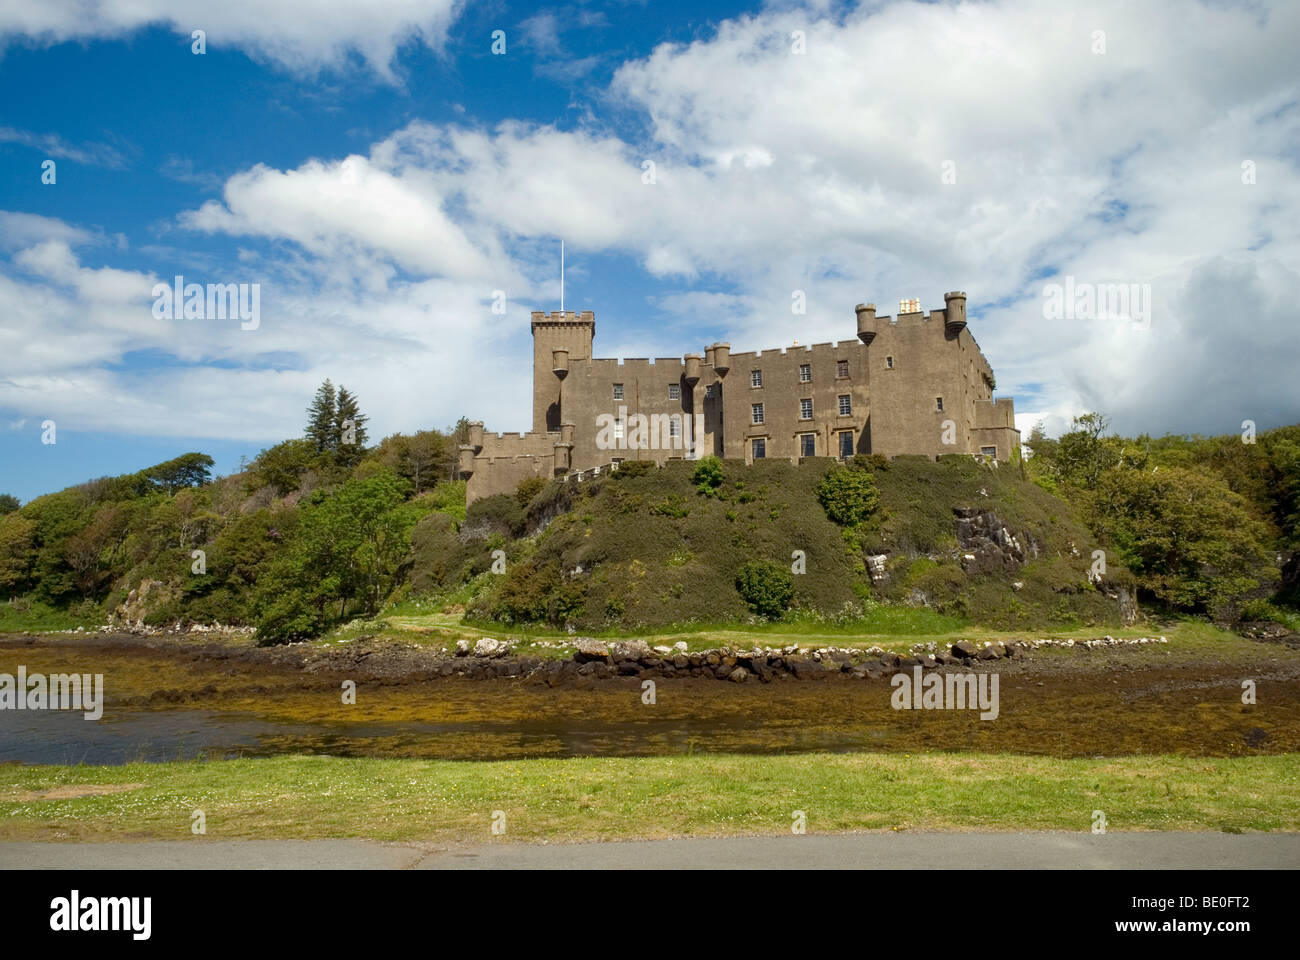 Dunvegan castle on a fine day with blue sky but some cloud seen from across a waterway inlet from the loch - Stock Image